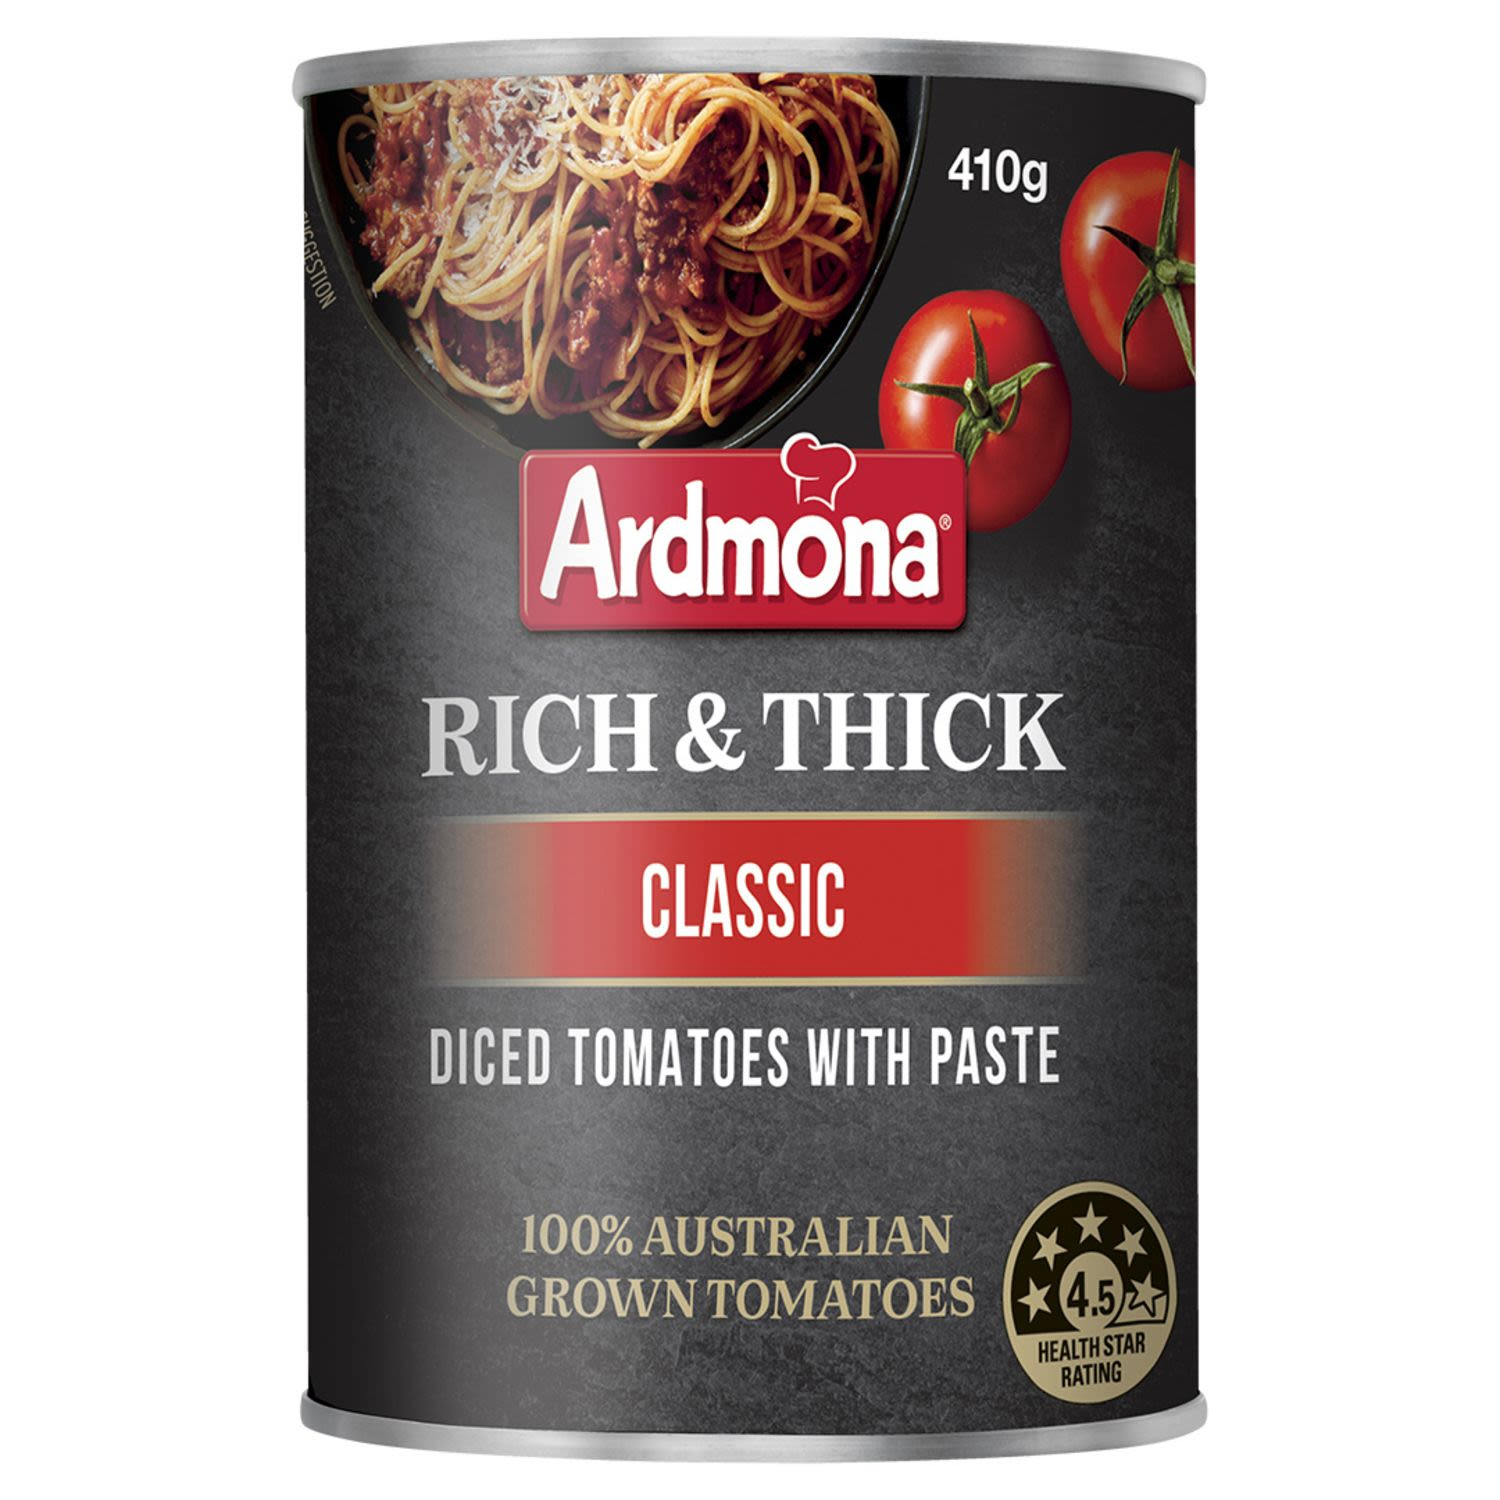 Ardmona Rich & Thick Diced Tomatoes with Paste Classic, 410 Gram